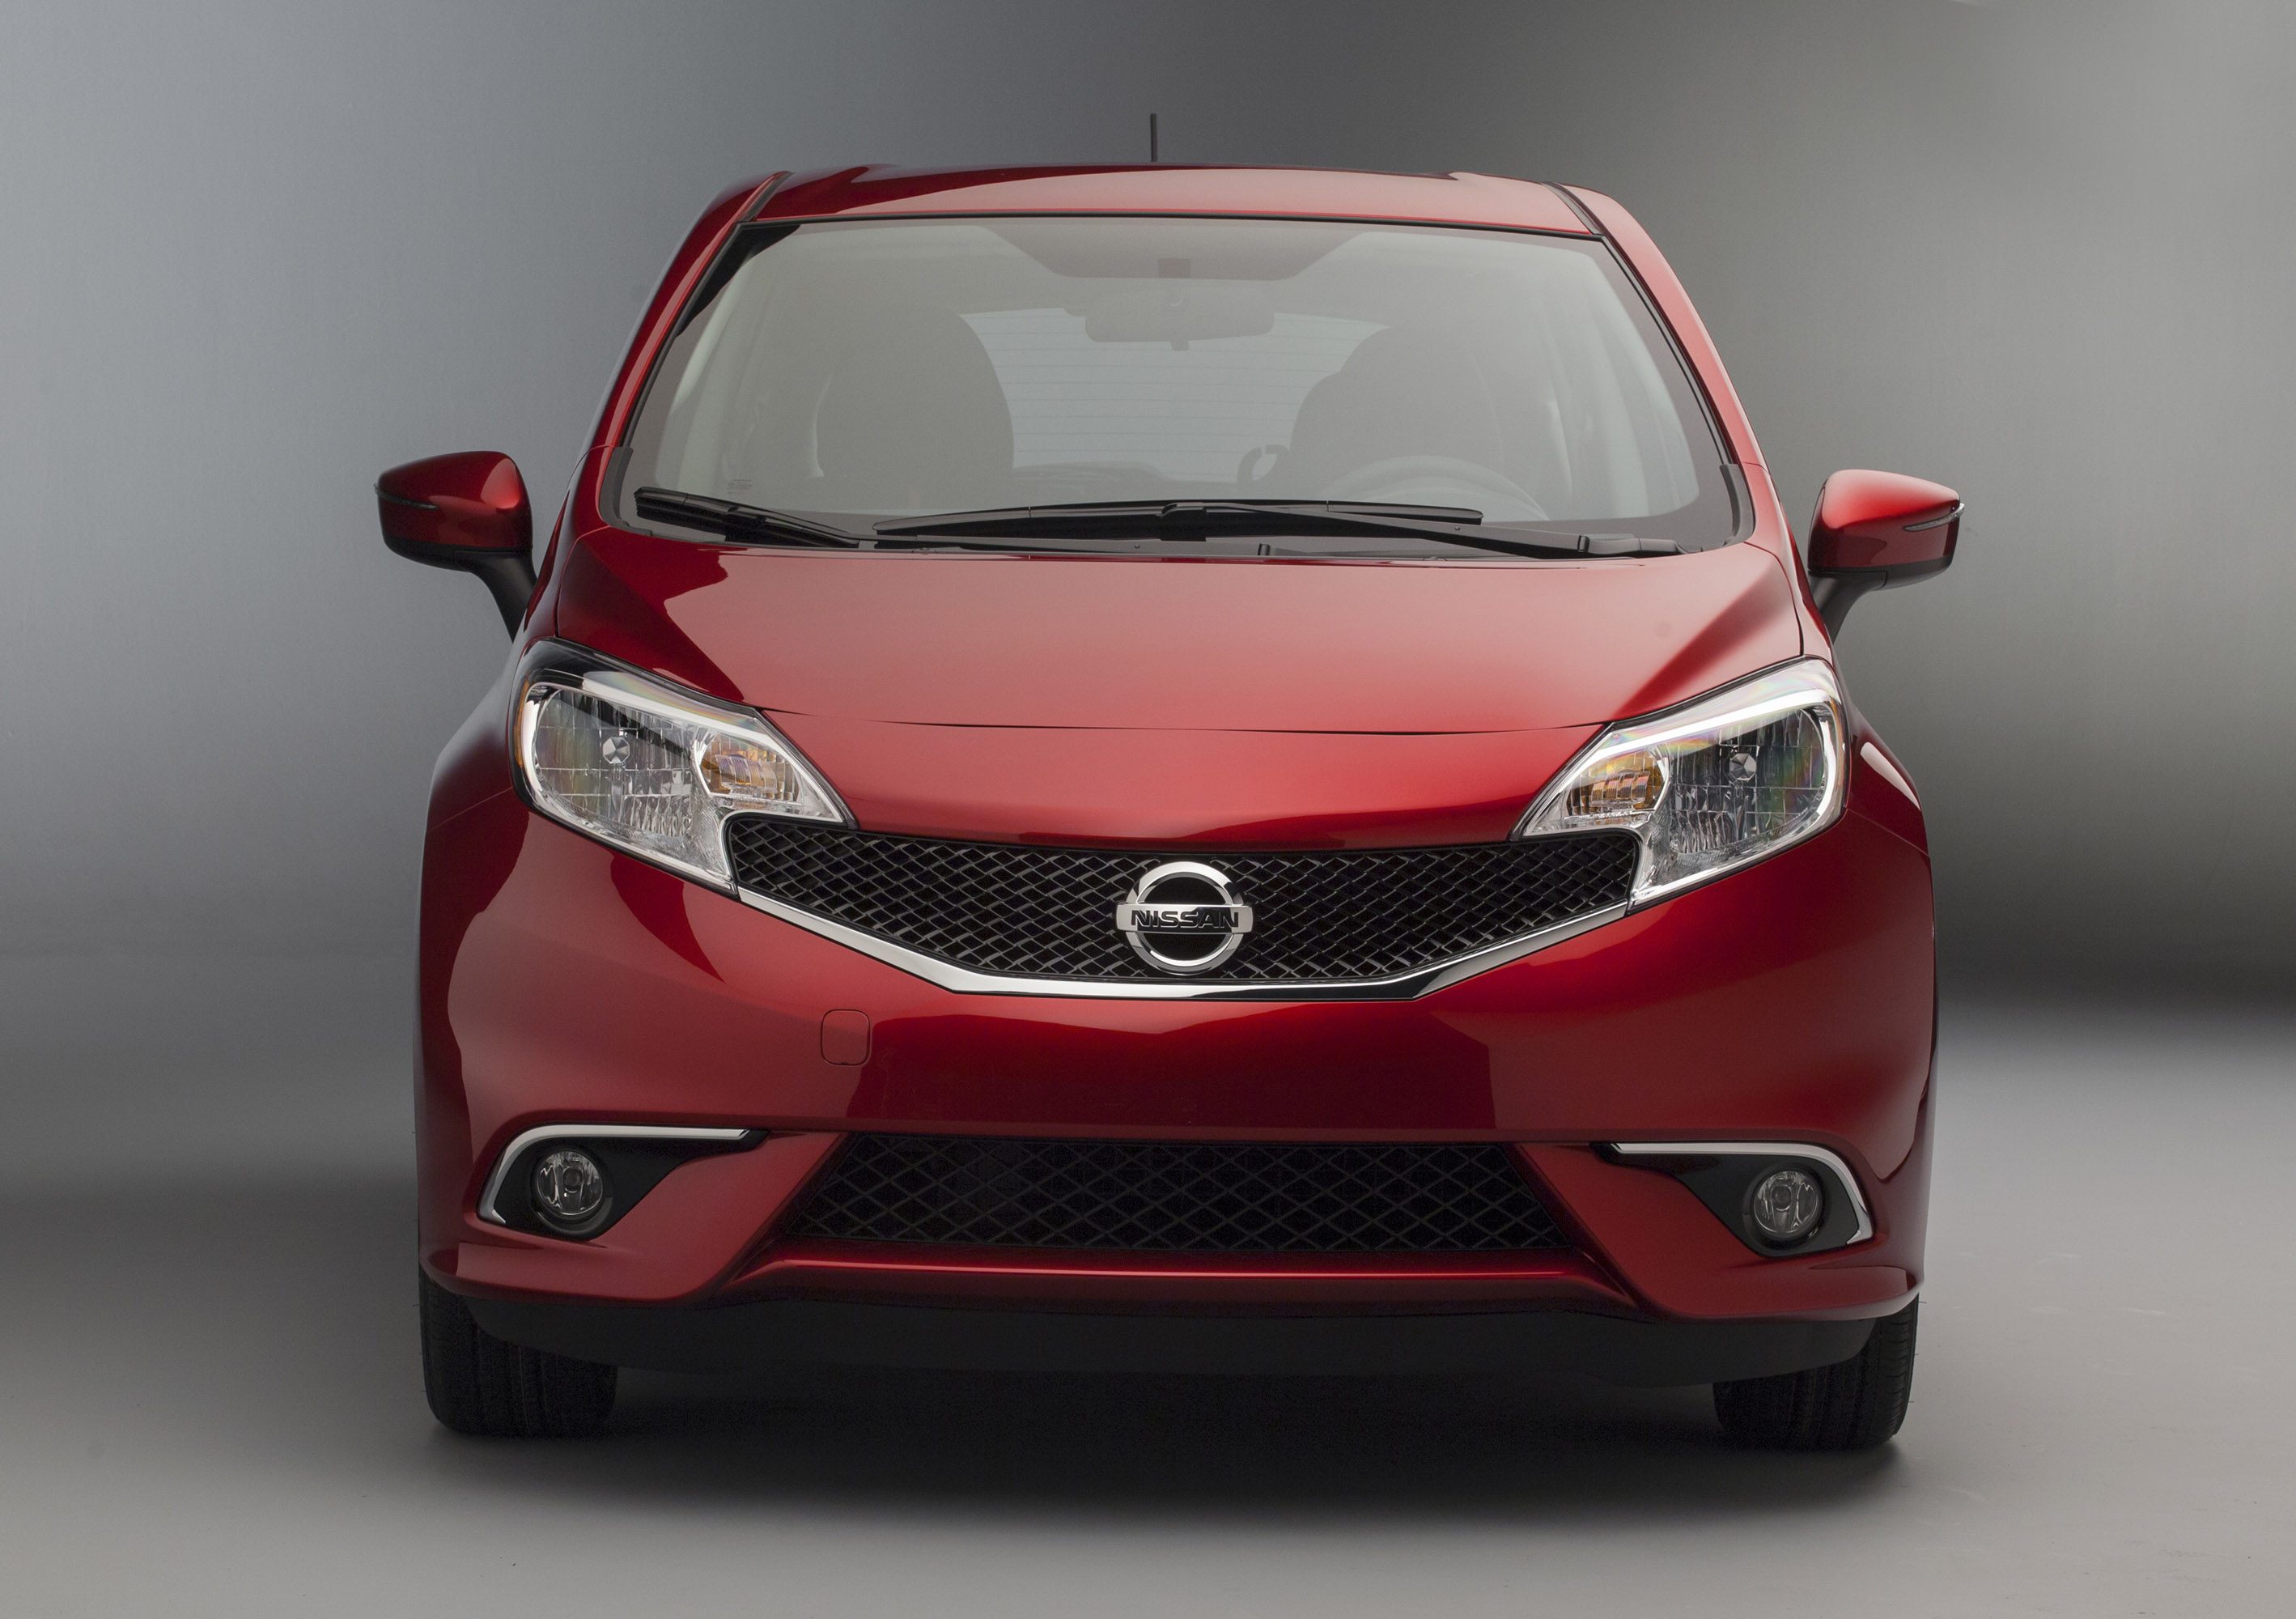 2015 Nissan Versa Note Gets SR And SL Trims